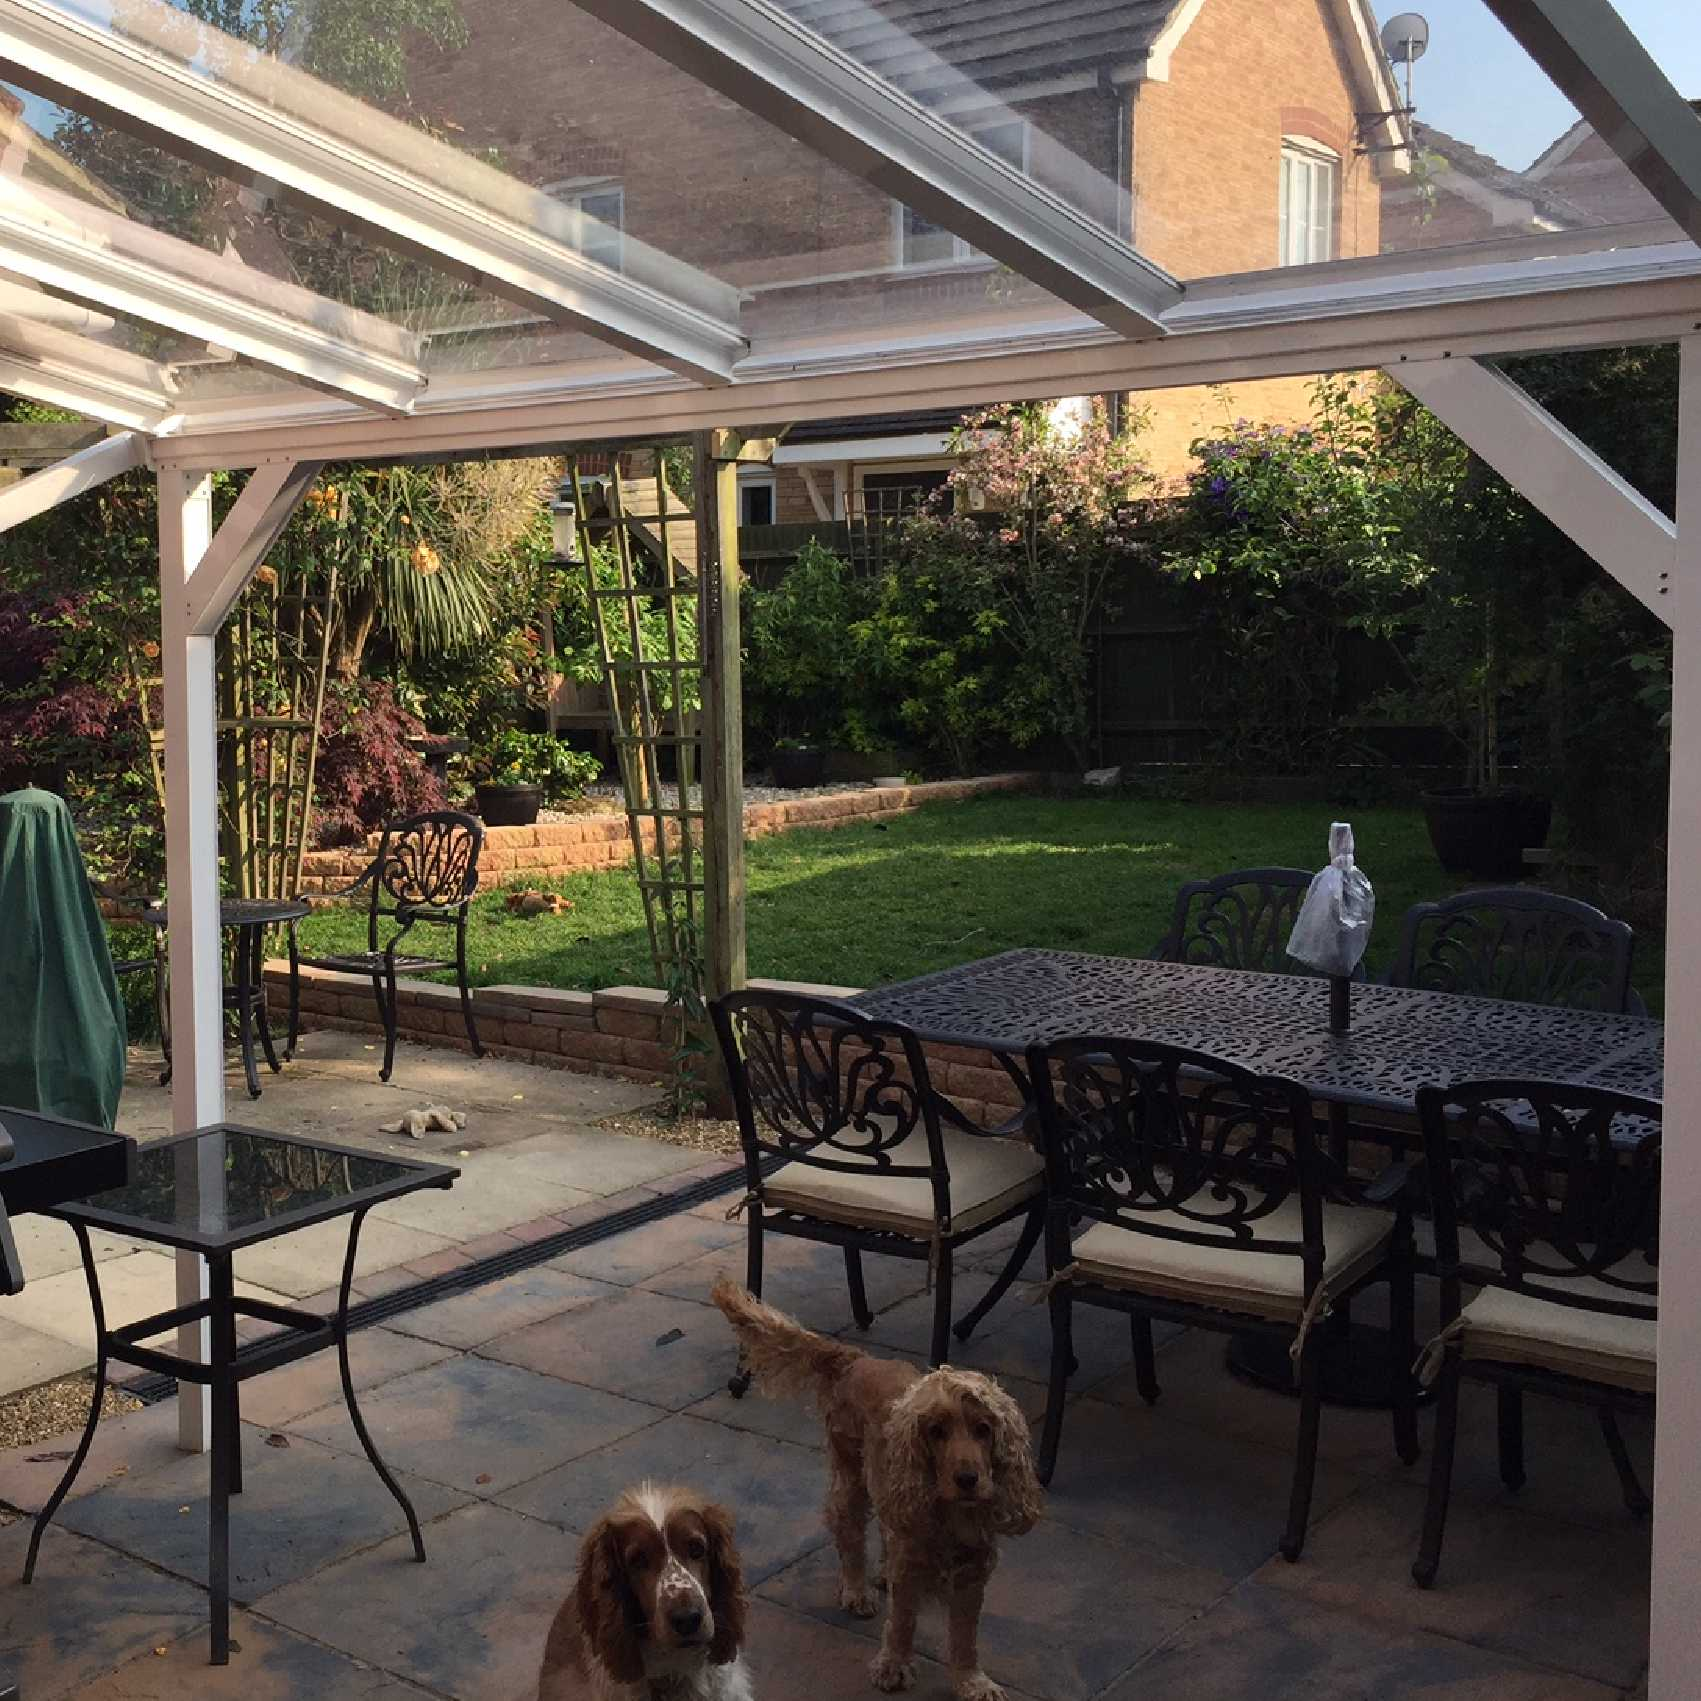 Affordable Omega Smart White Lean-To Canopy with 6mm Glass Clear Plate Polycarbonate Glazing - 8.4m (W) x 3.0m (P), (4) Supporting Posts